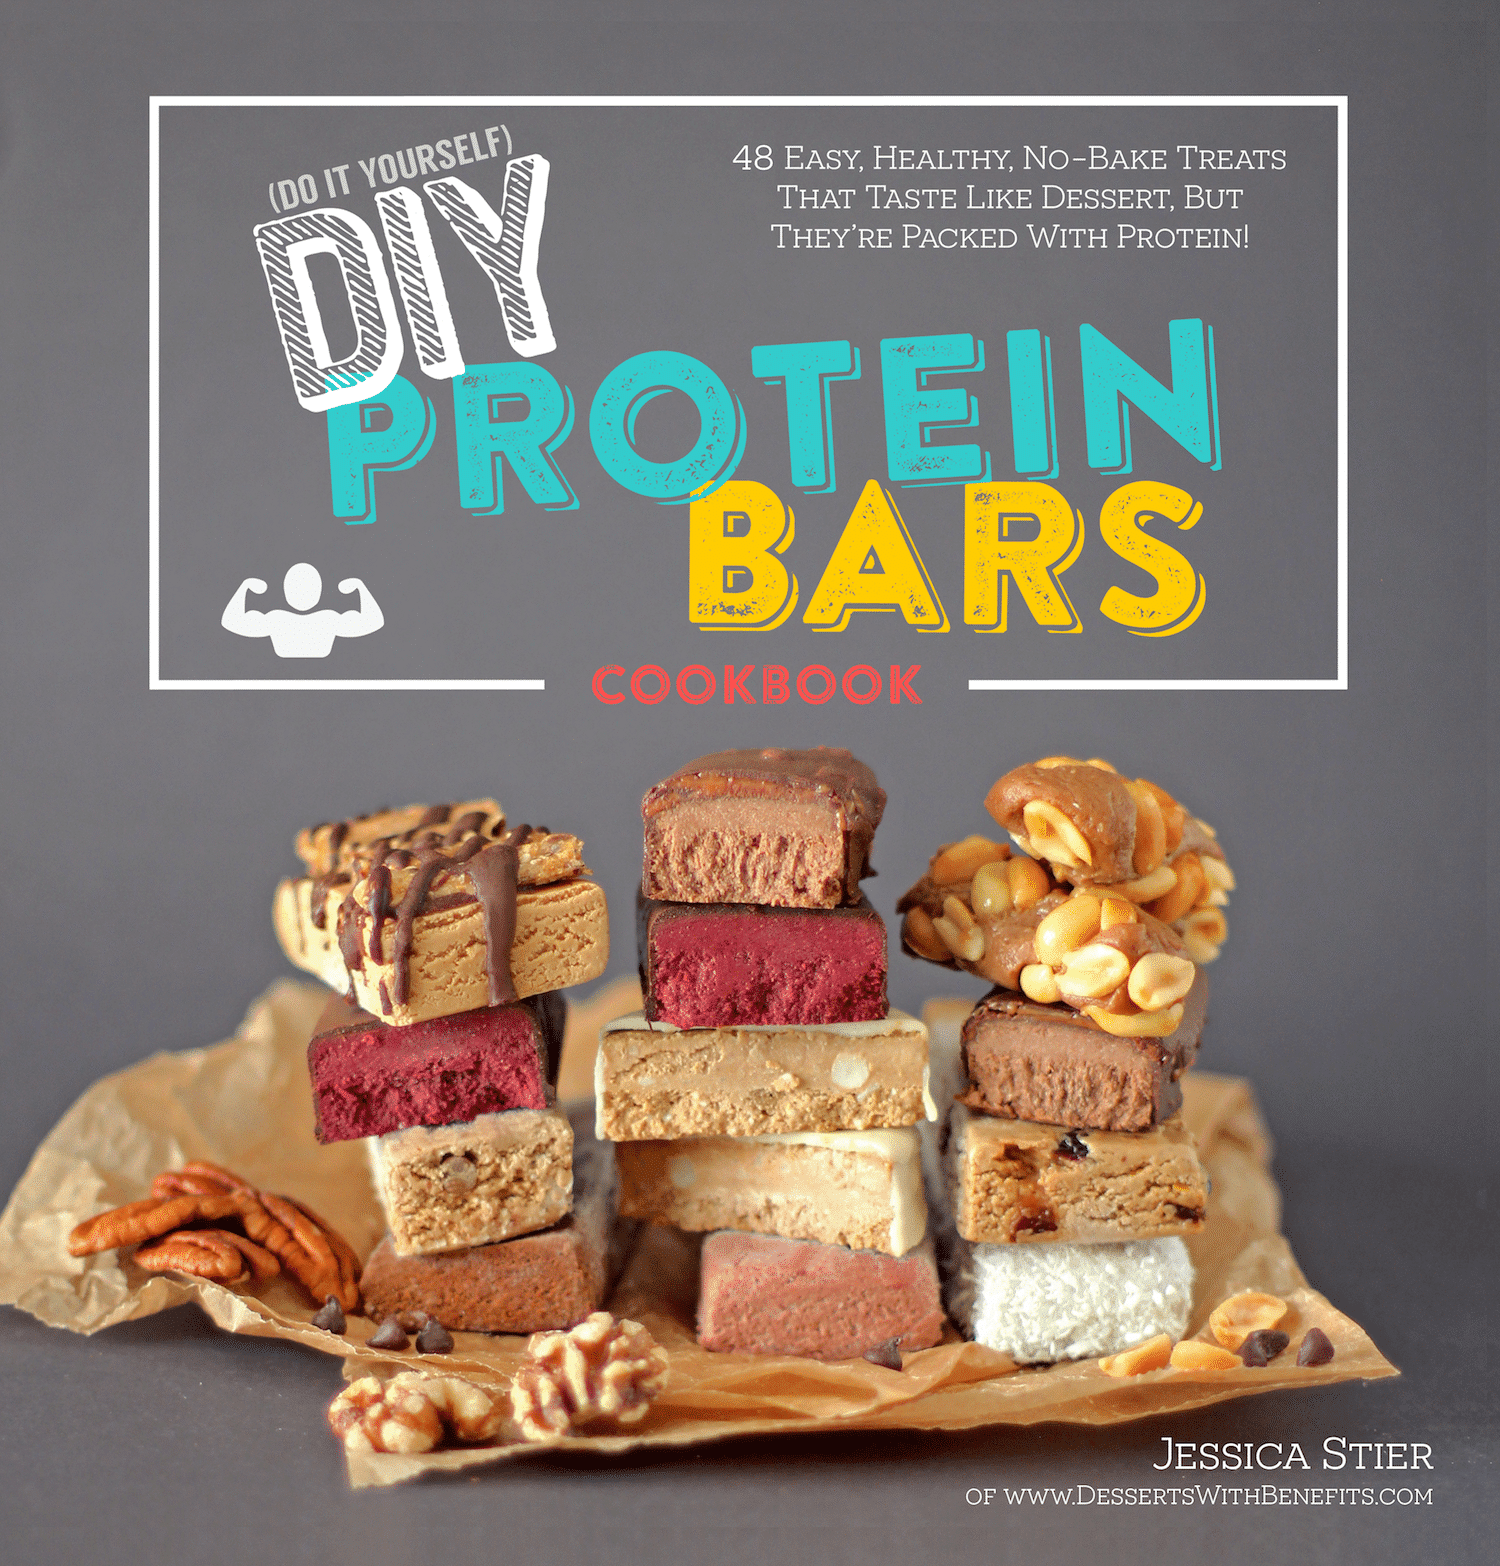 The DIY Protein Bars Cookbook – authored by Jessica Stier of the Desserts with Benefits Blog